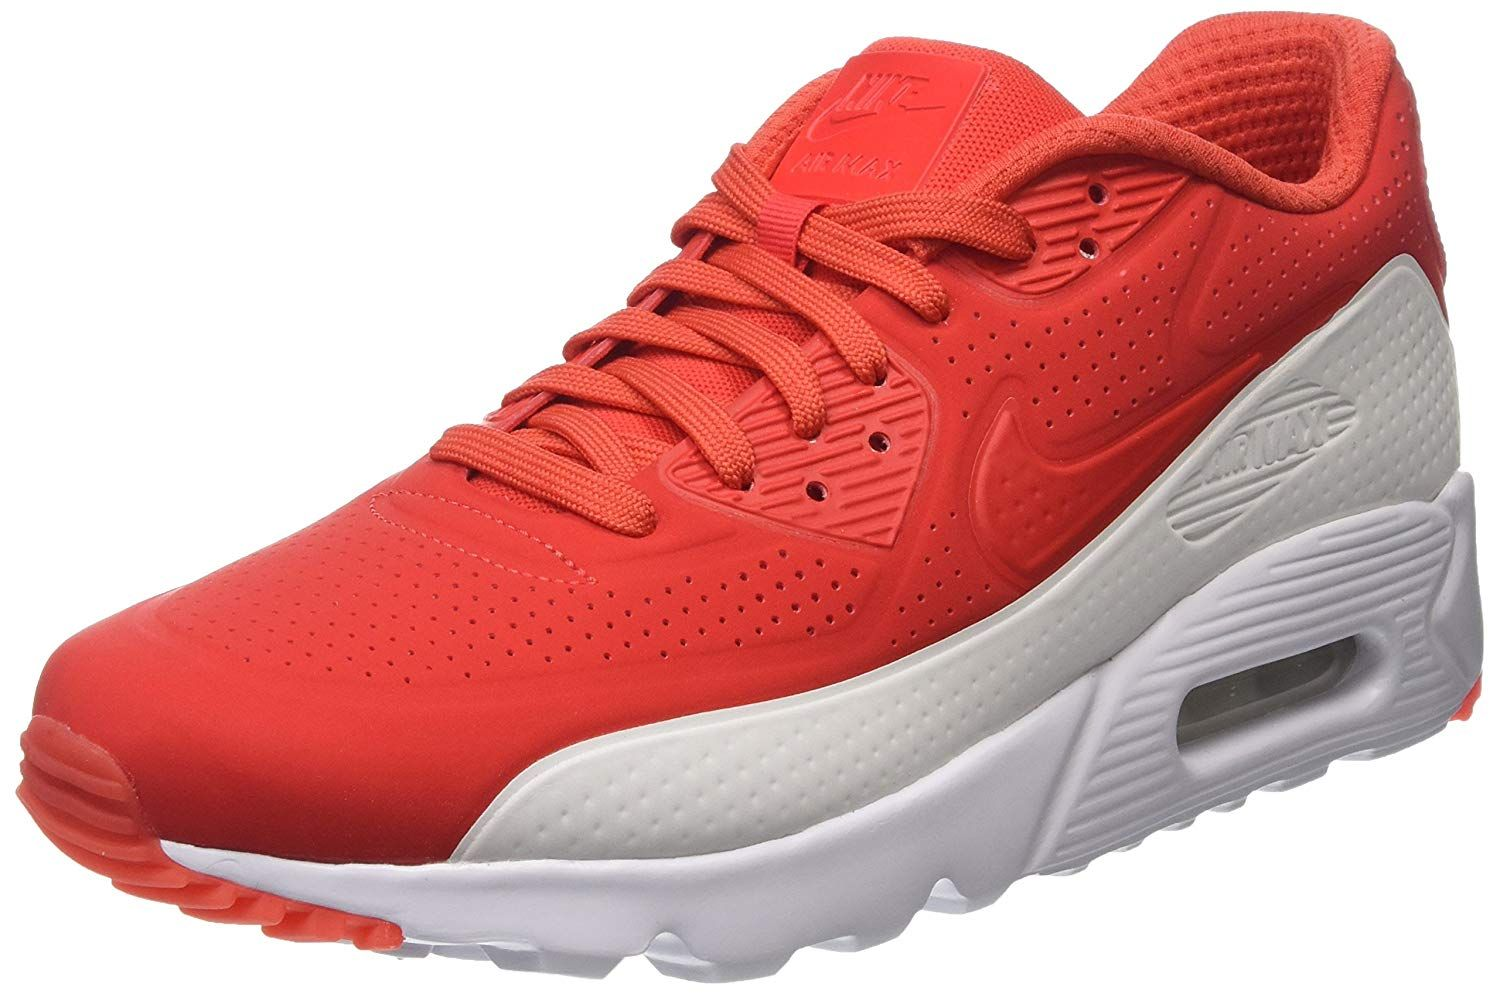 NIKE Men's Air Max 90 Ultra Moire Training Running Shoes